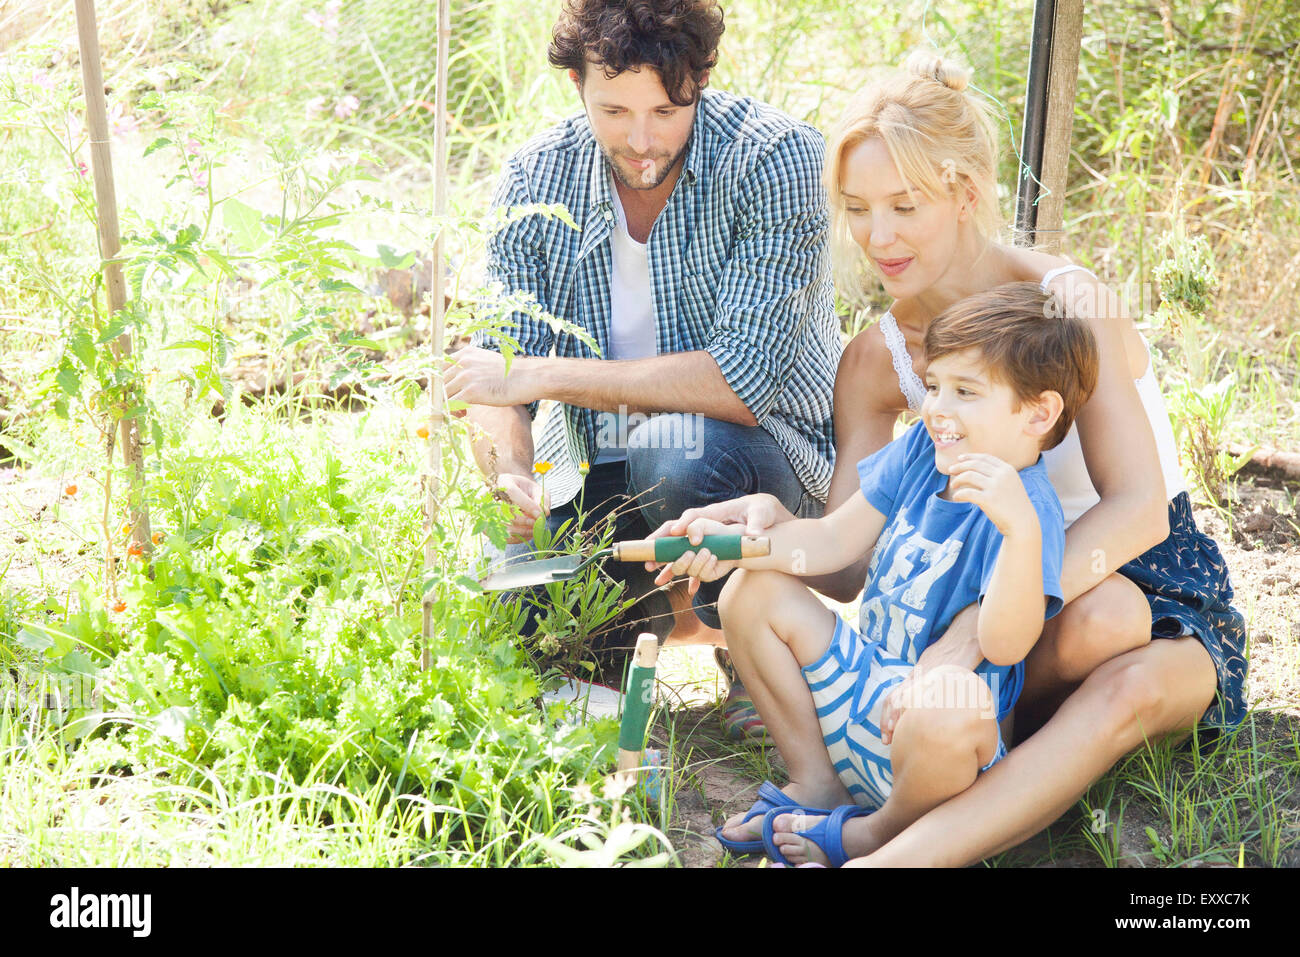 Parents teaching little boy how to garden - Stock Image